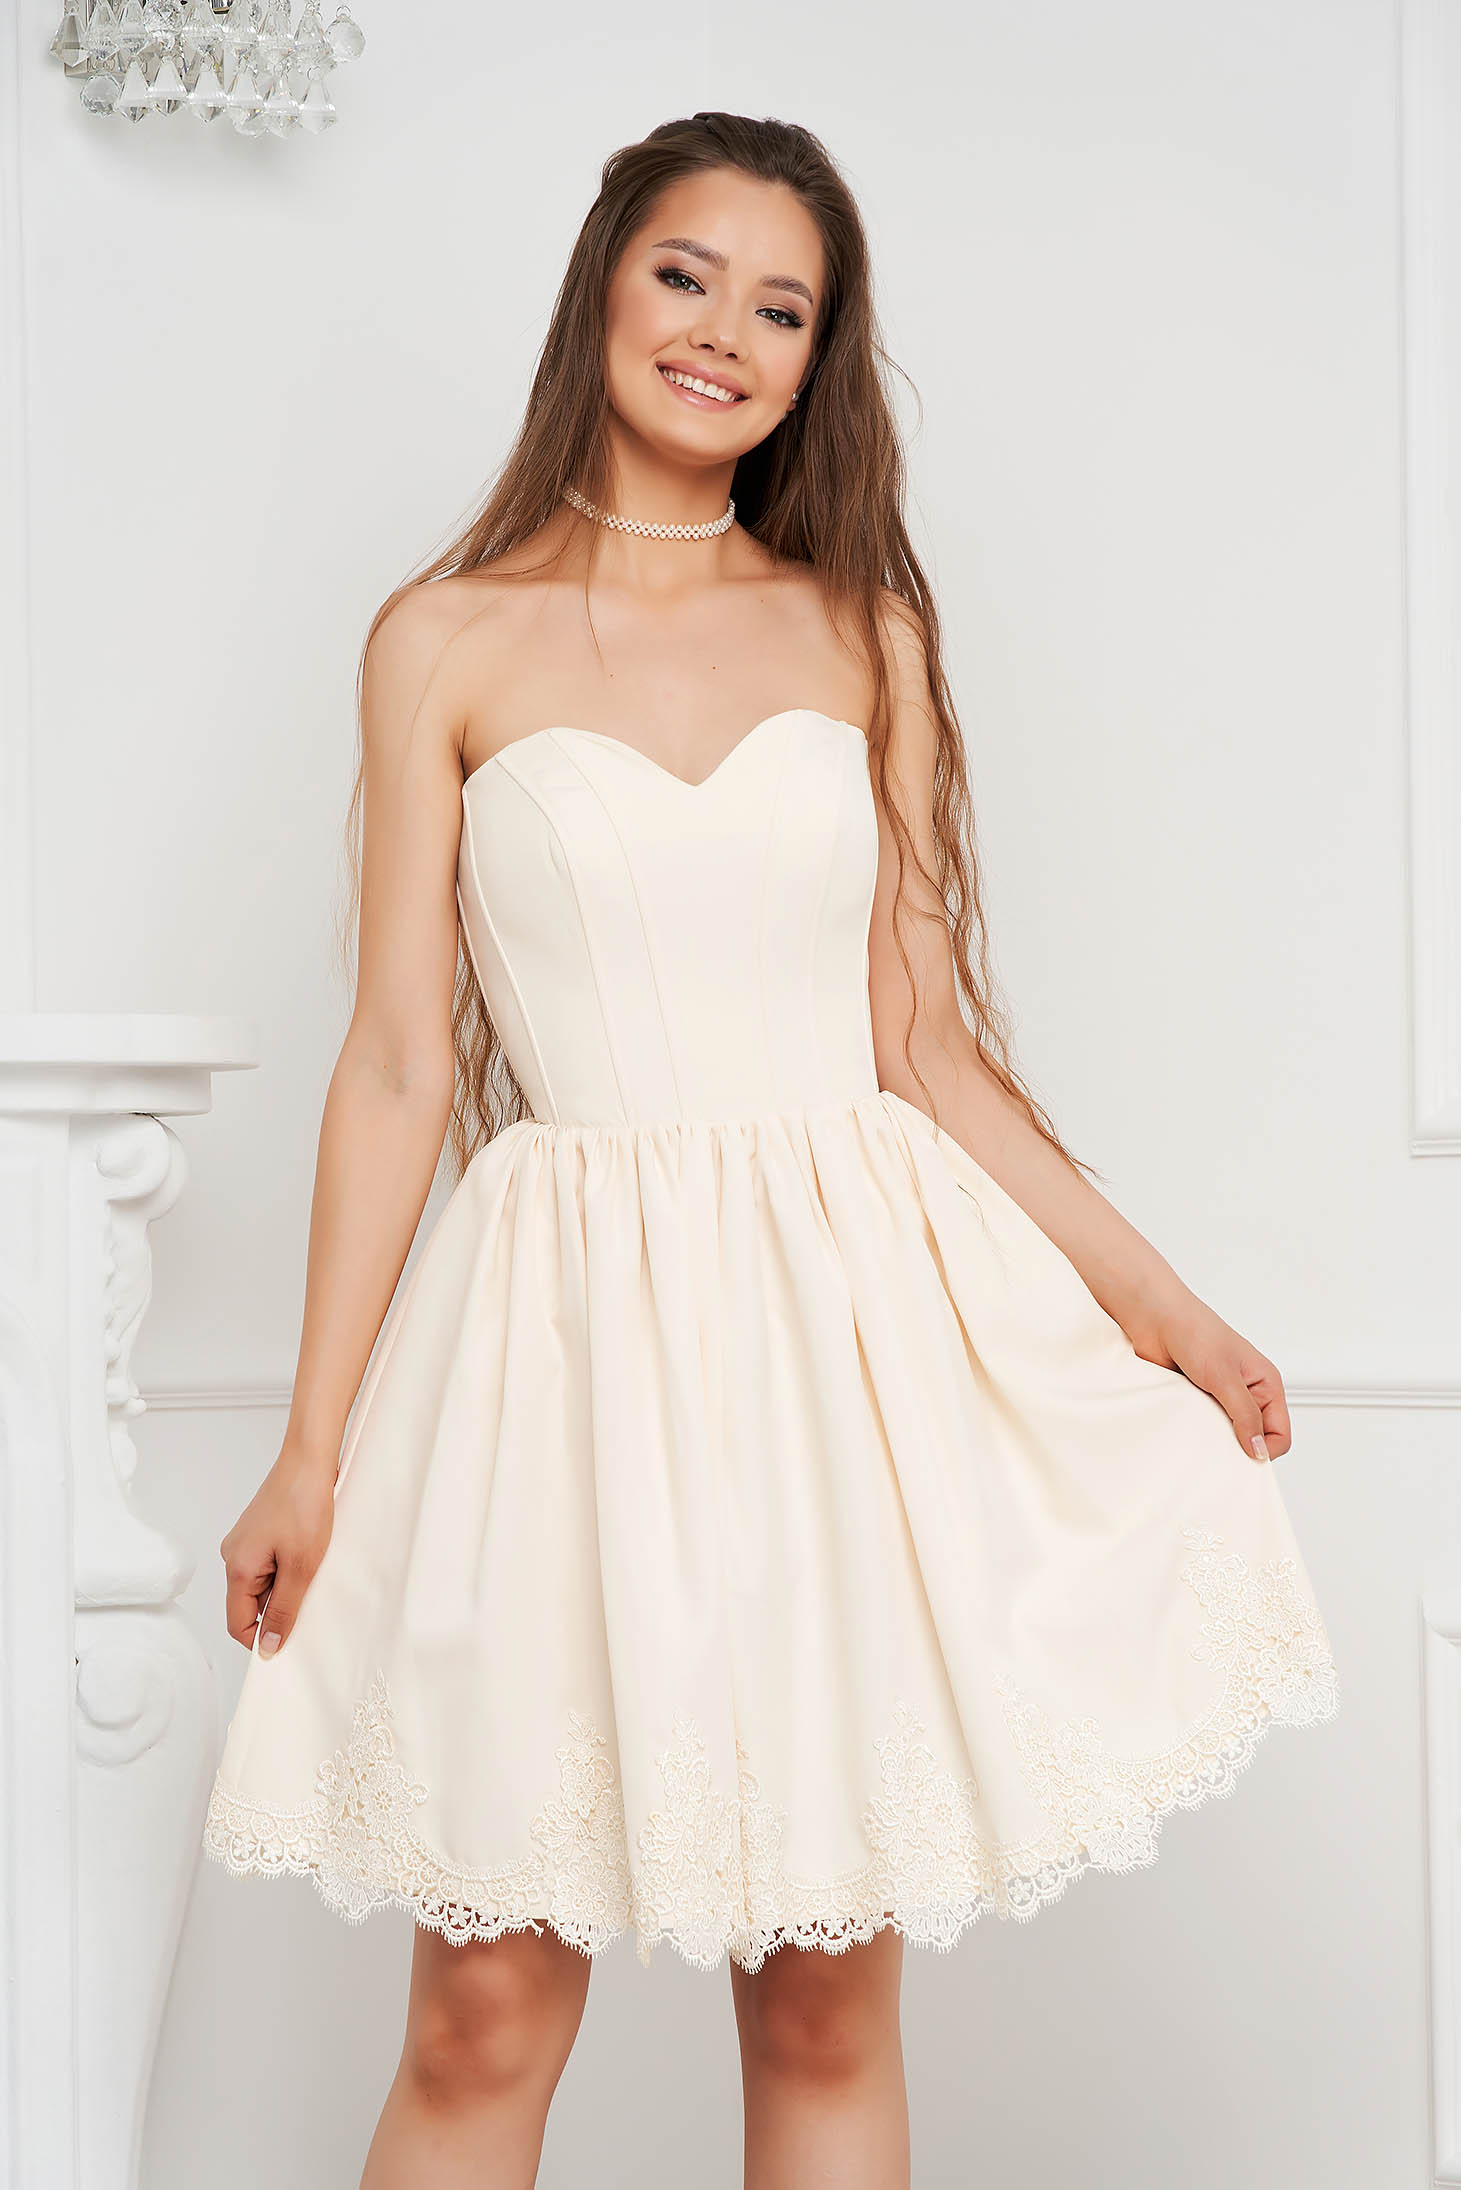 Ivory dress short cut cloche with push-up cups laced